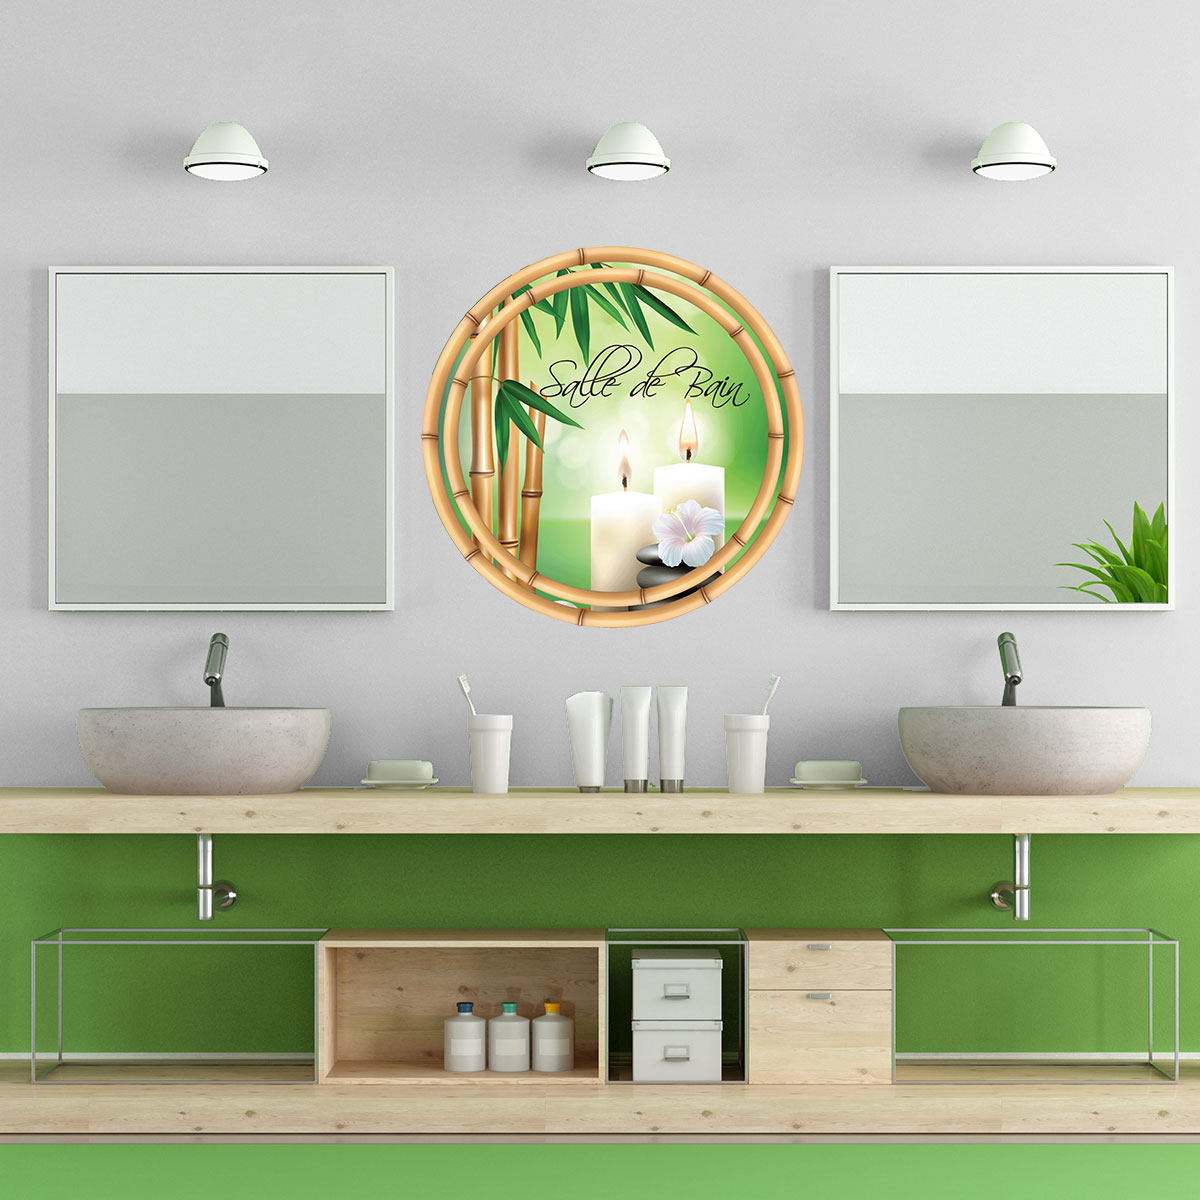 Grille Aeration Fenetre Salle De Bain ~ Stickers Salle De Bain Zen Great Stickers Banzai Stickers Zen M